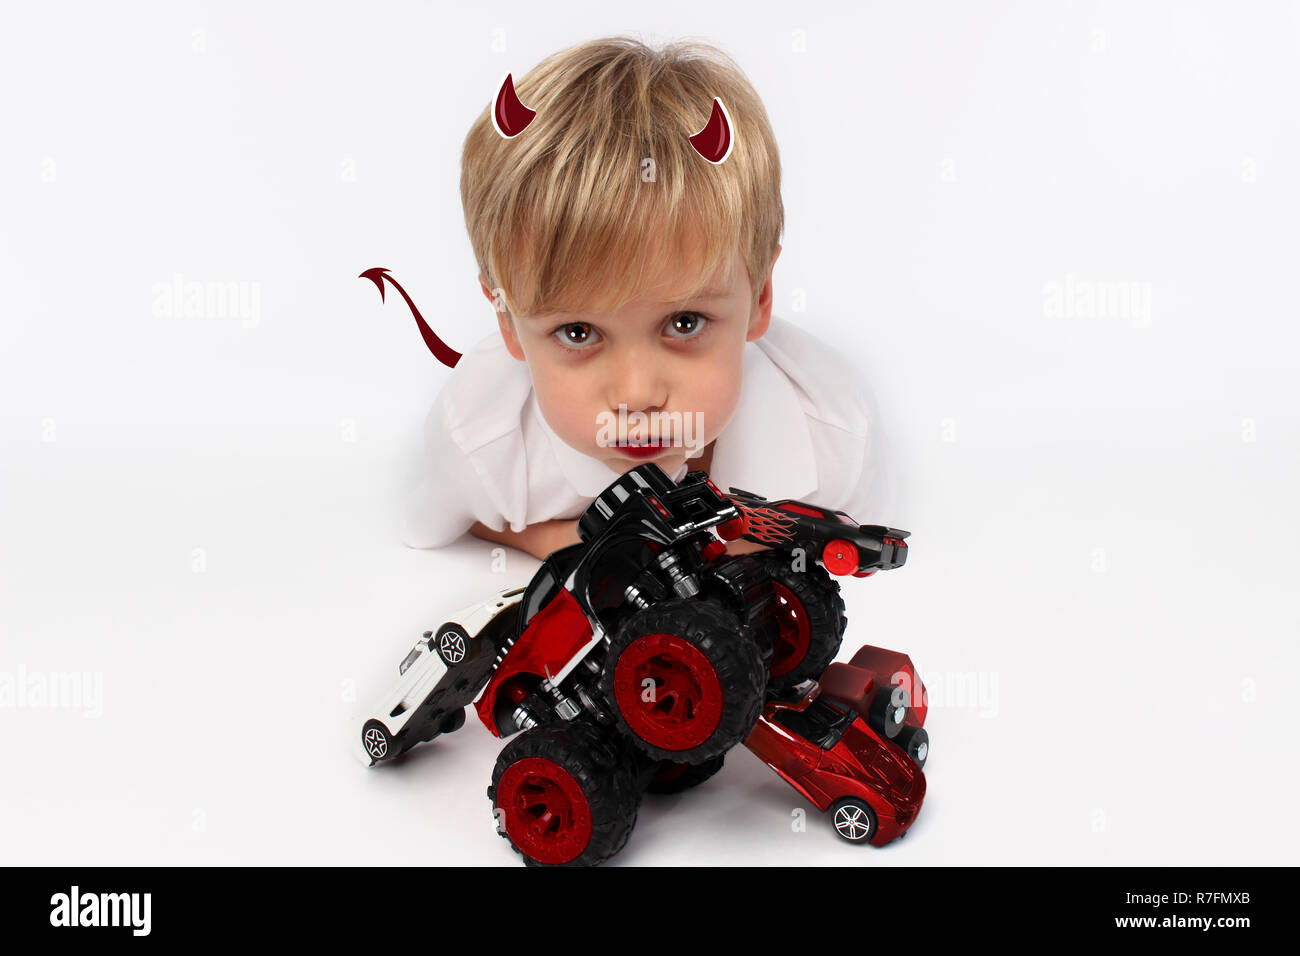 Naughty or good child for Christmas? PF or letter to Santa-Claus for Christmas. Little child boy appearing as an adorable angelic devil - Stock Image